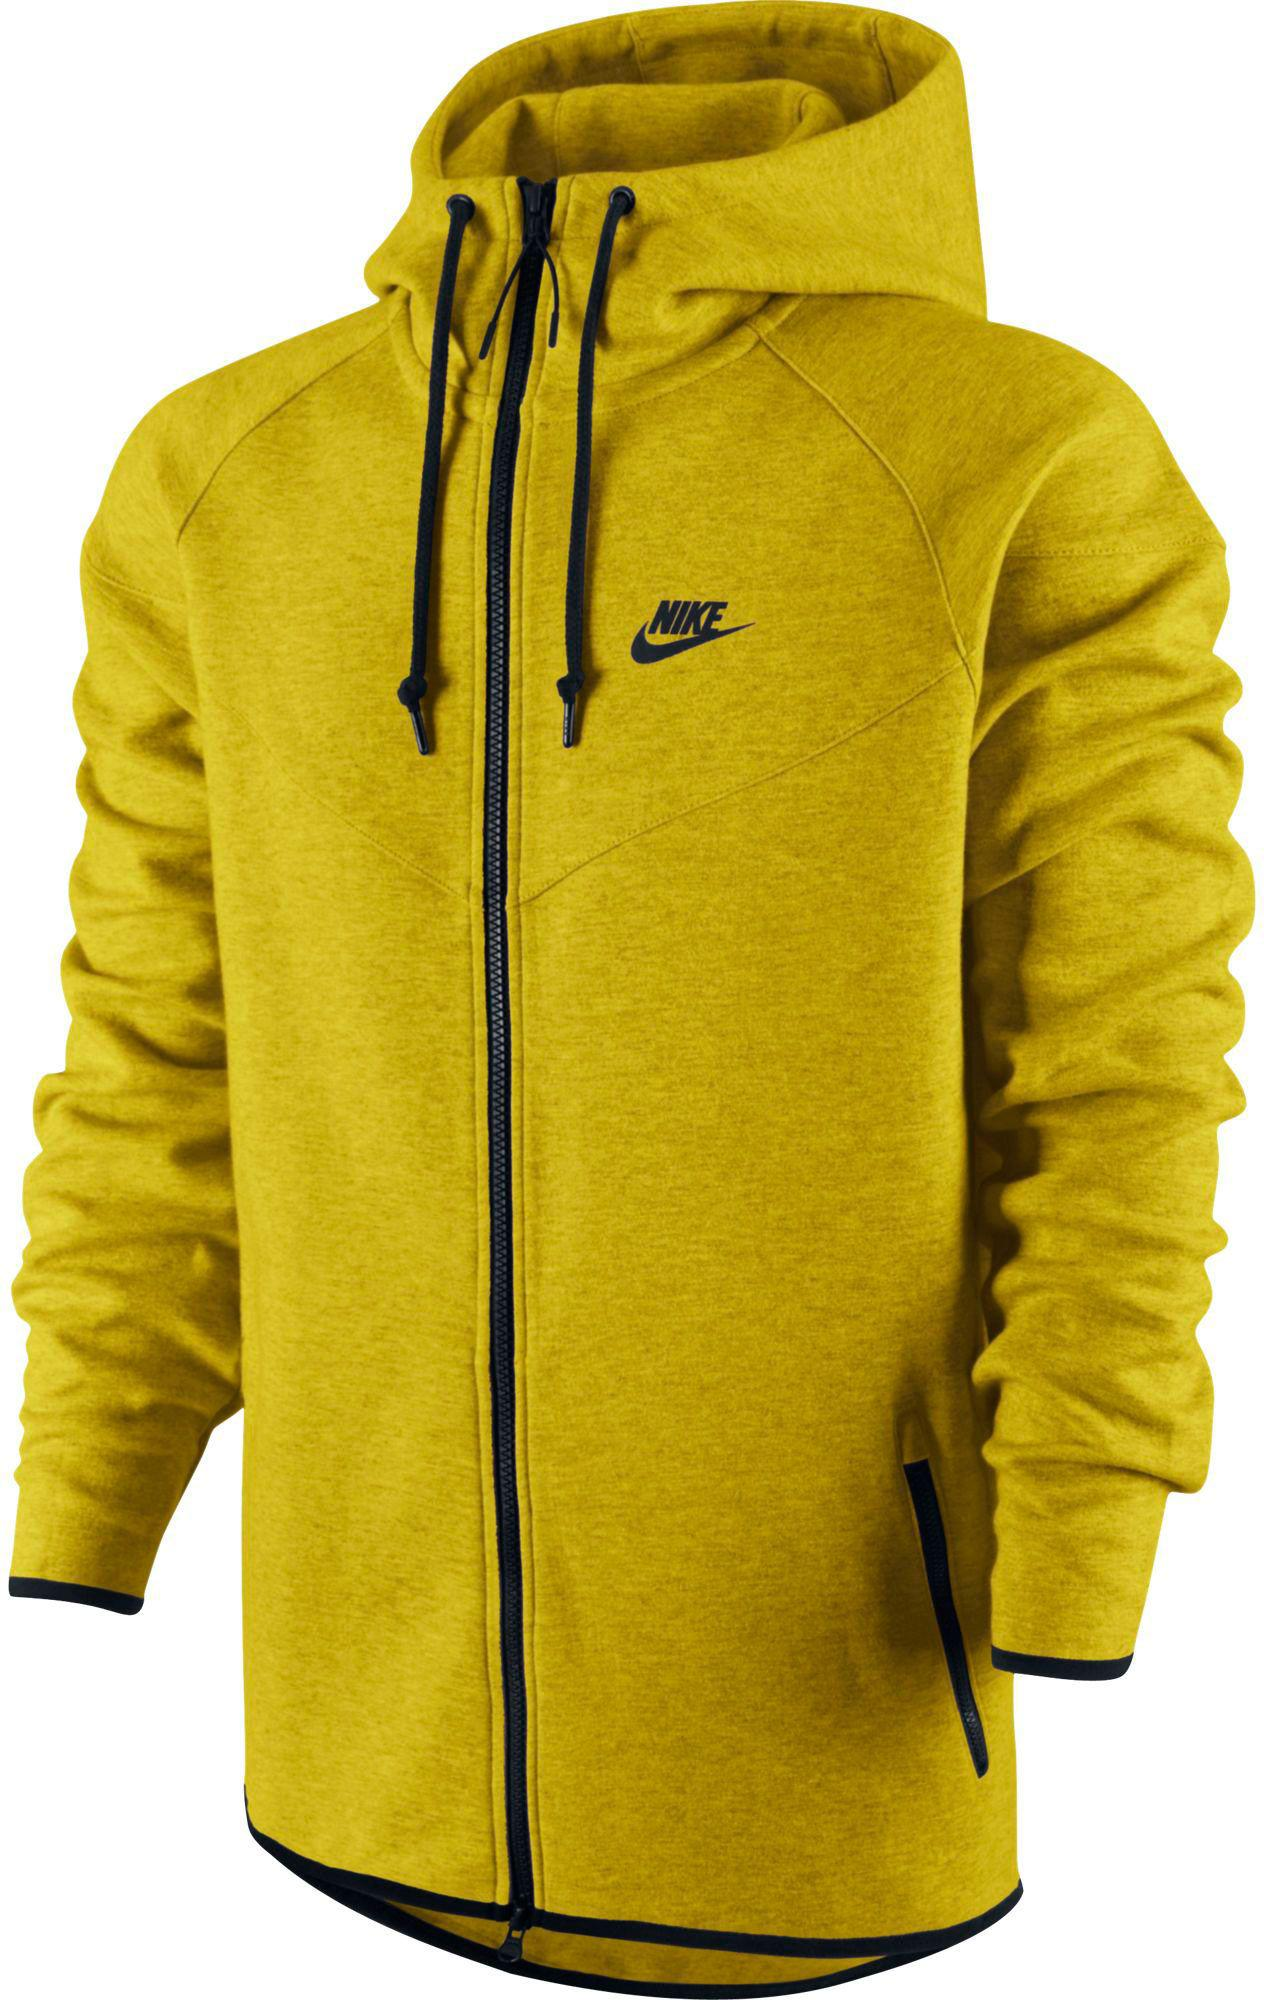 ff7b8ad7d406 Lyst - Nike Tech Fleece Windrunner Full Zip Running Jacket in Yellow ...